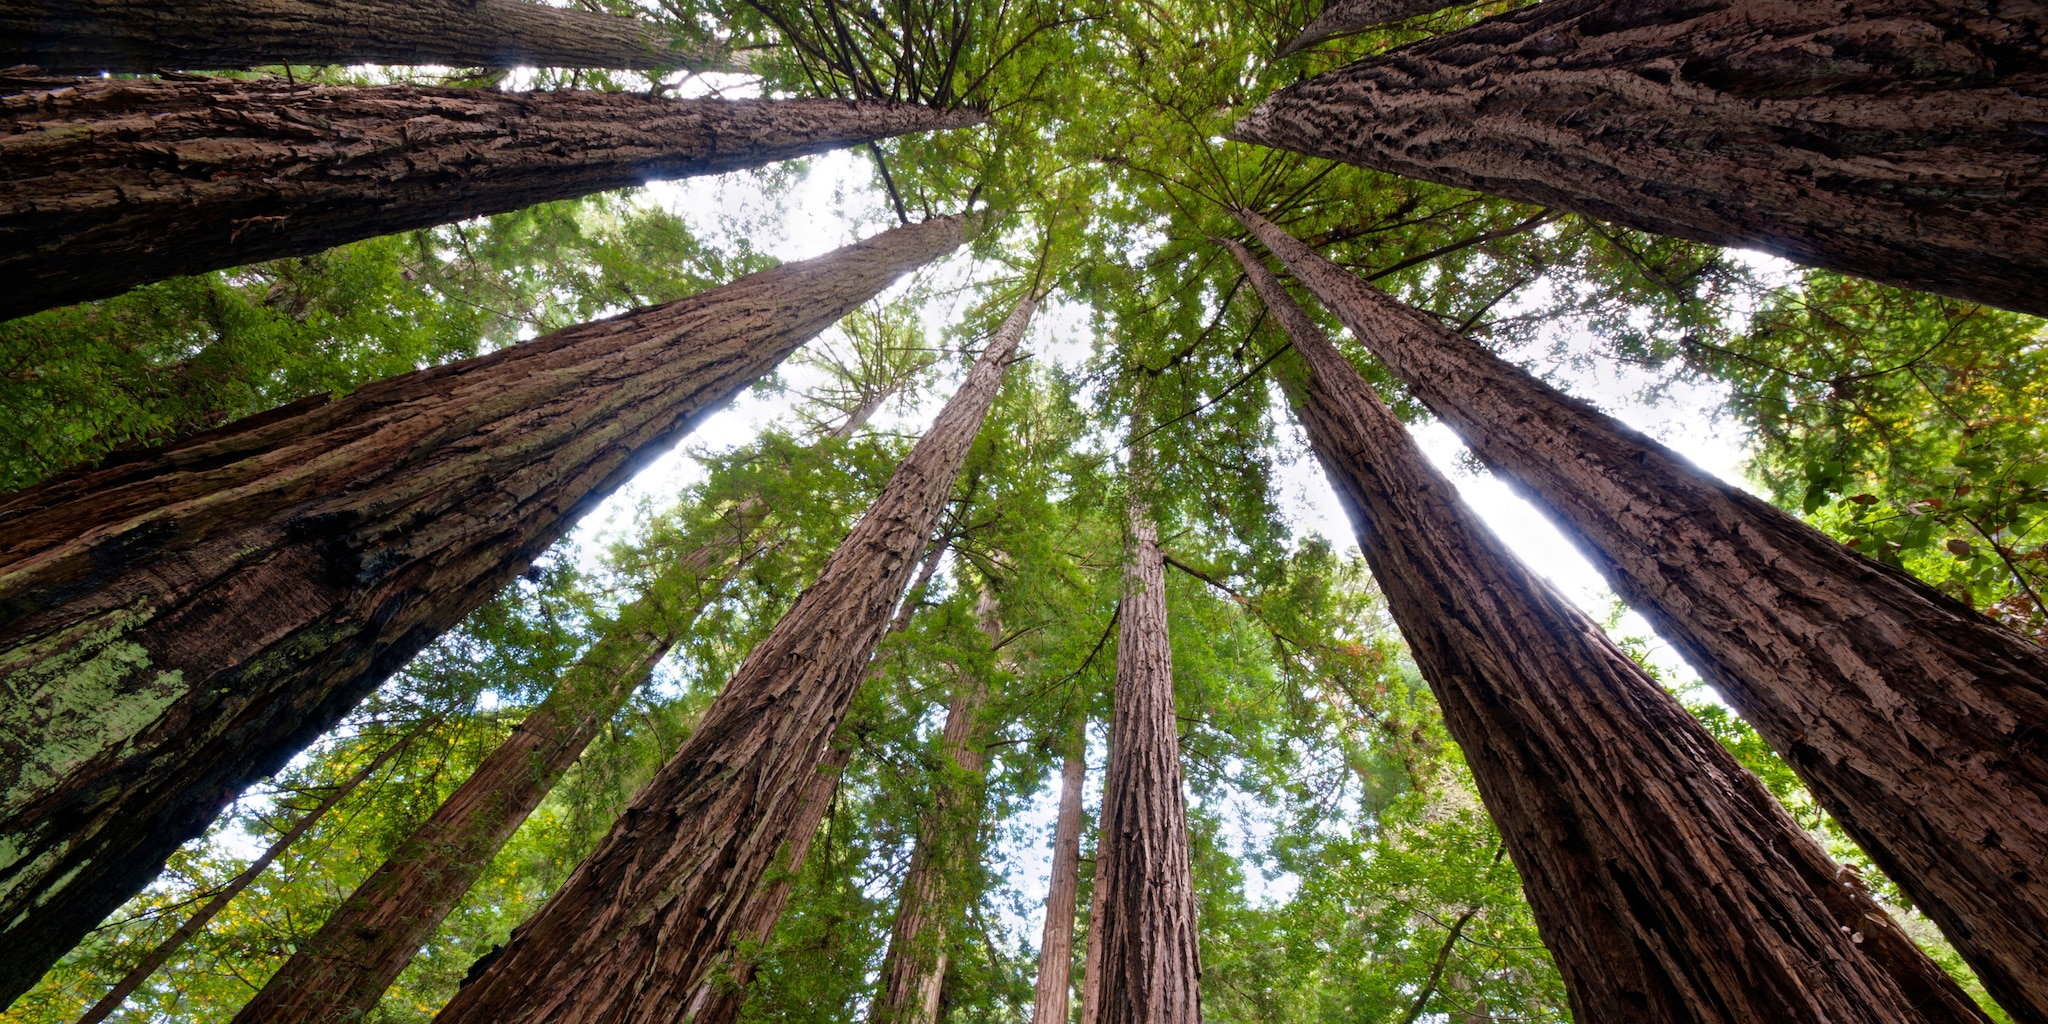 The towering Redwood trees hide the sky at Muir Woods